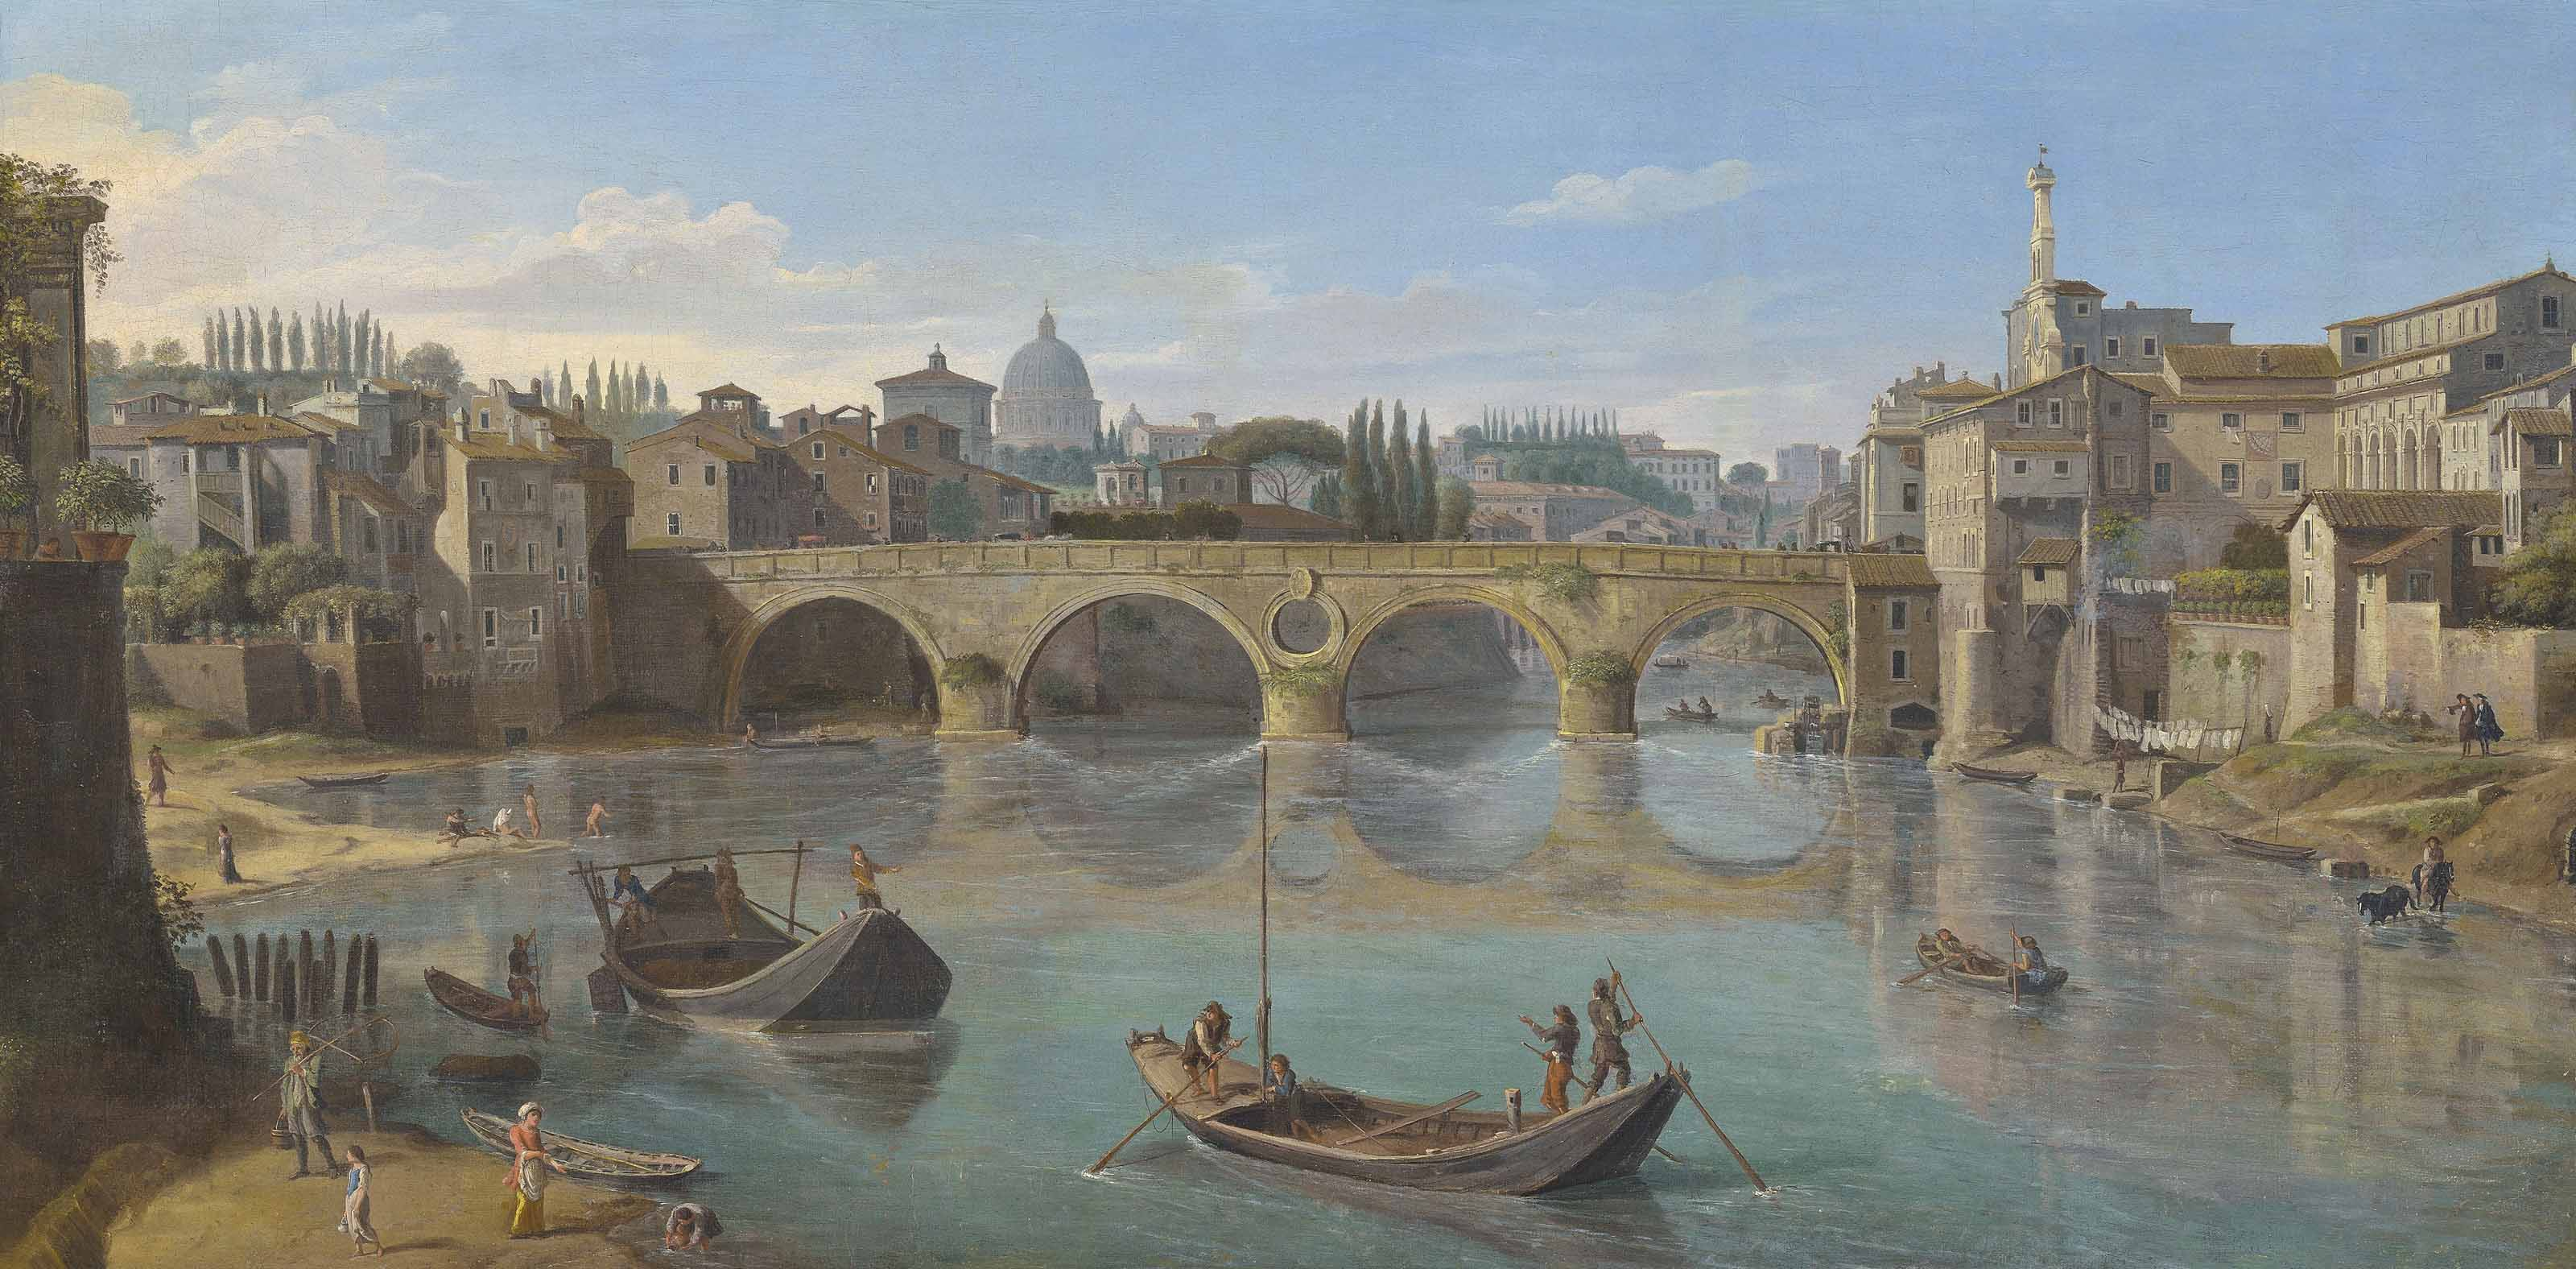 The Tiber, Rome, with the Ponte Sisto